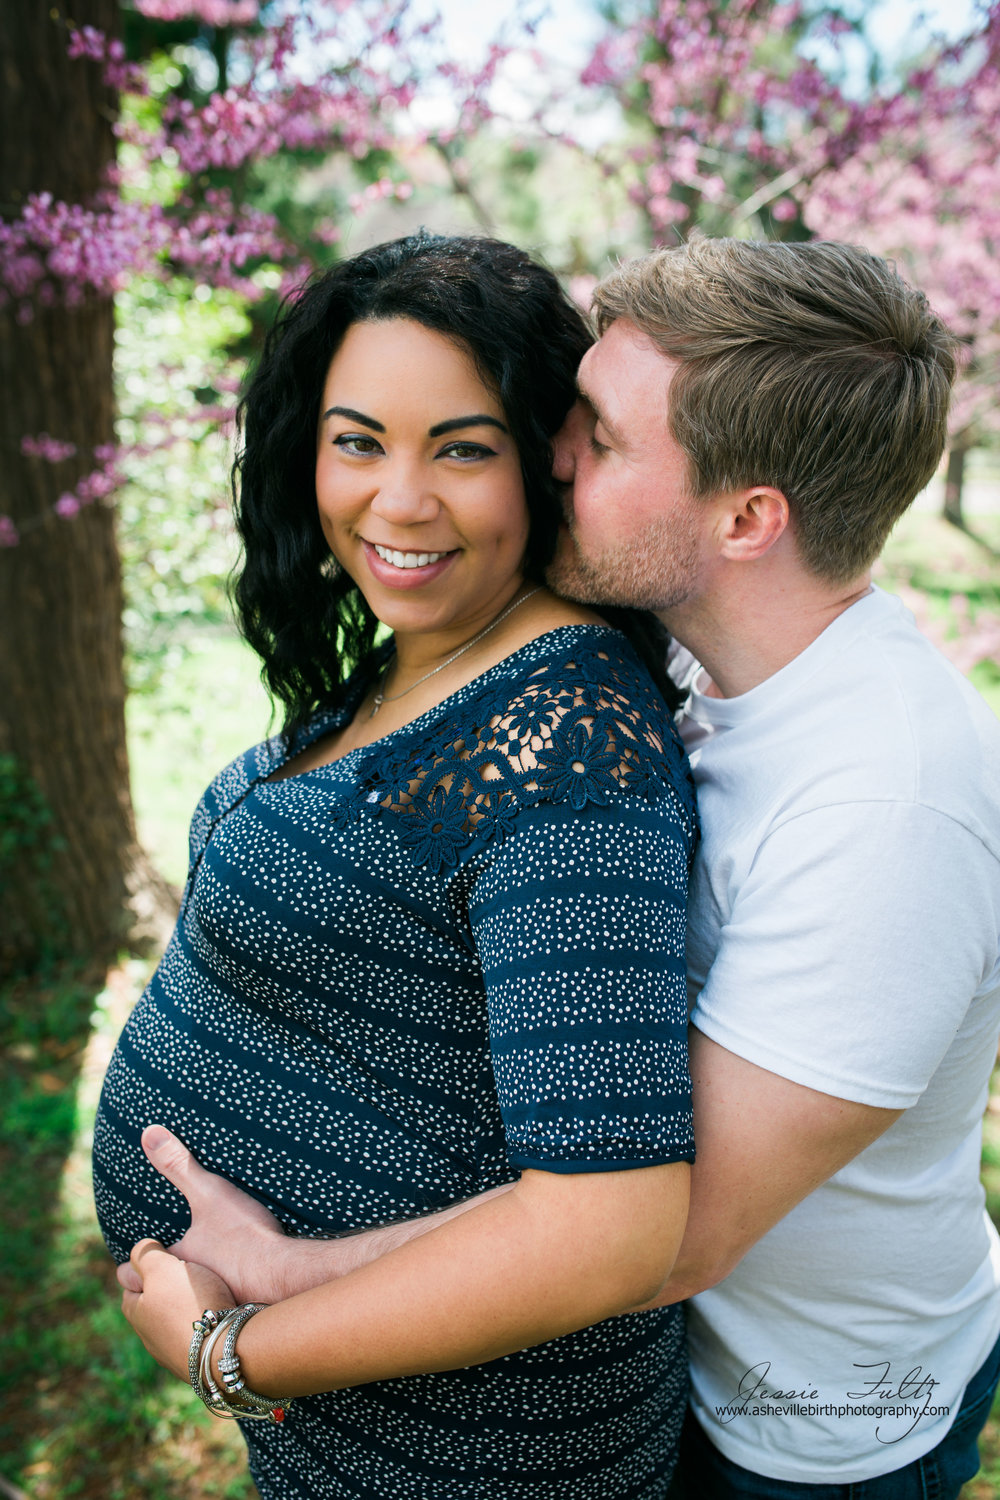 husband standing behind pregnant African-American wife with his hands on her belly kissing her cheek